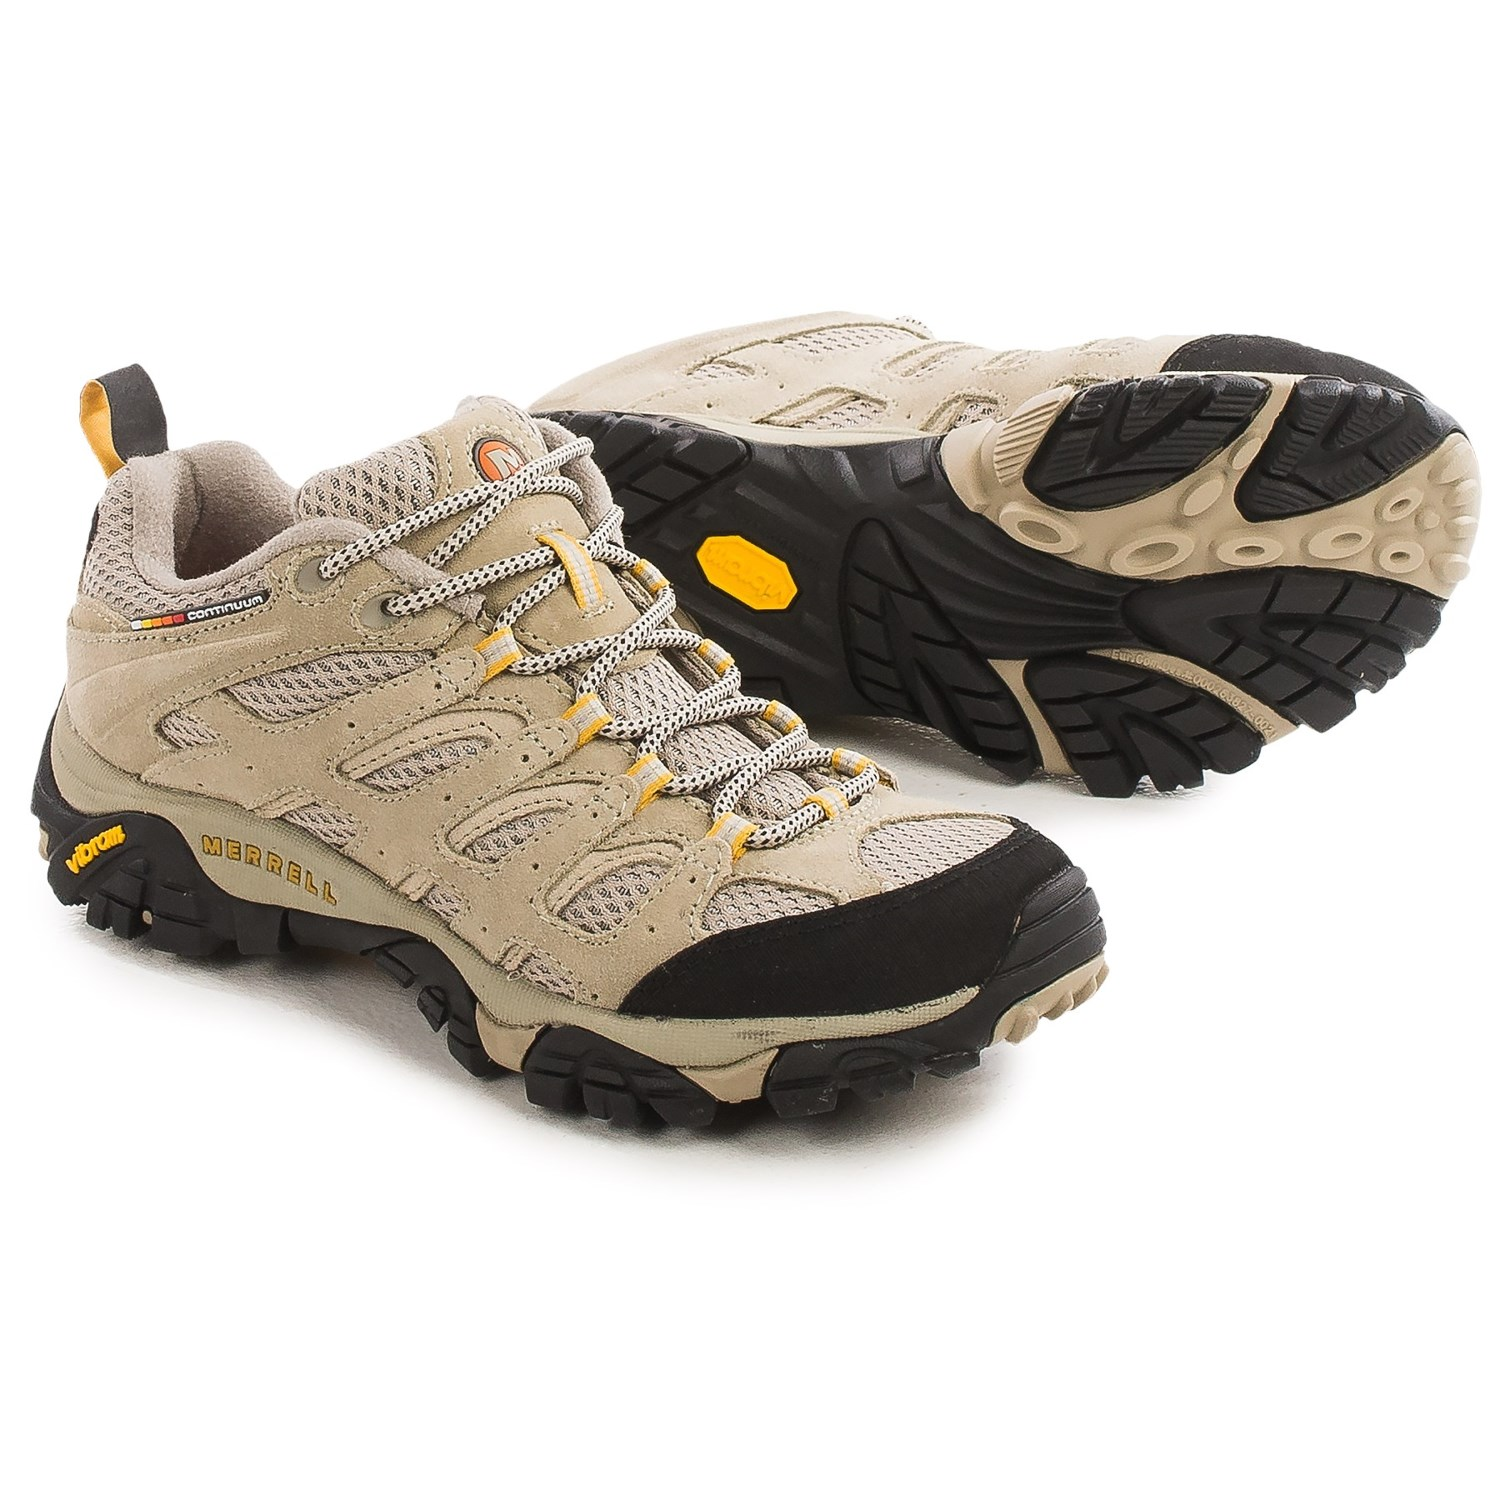 Merrell Women S Moab Ventilator Hiking Shoe